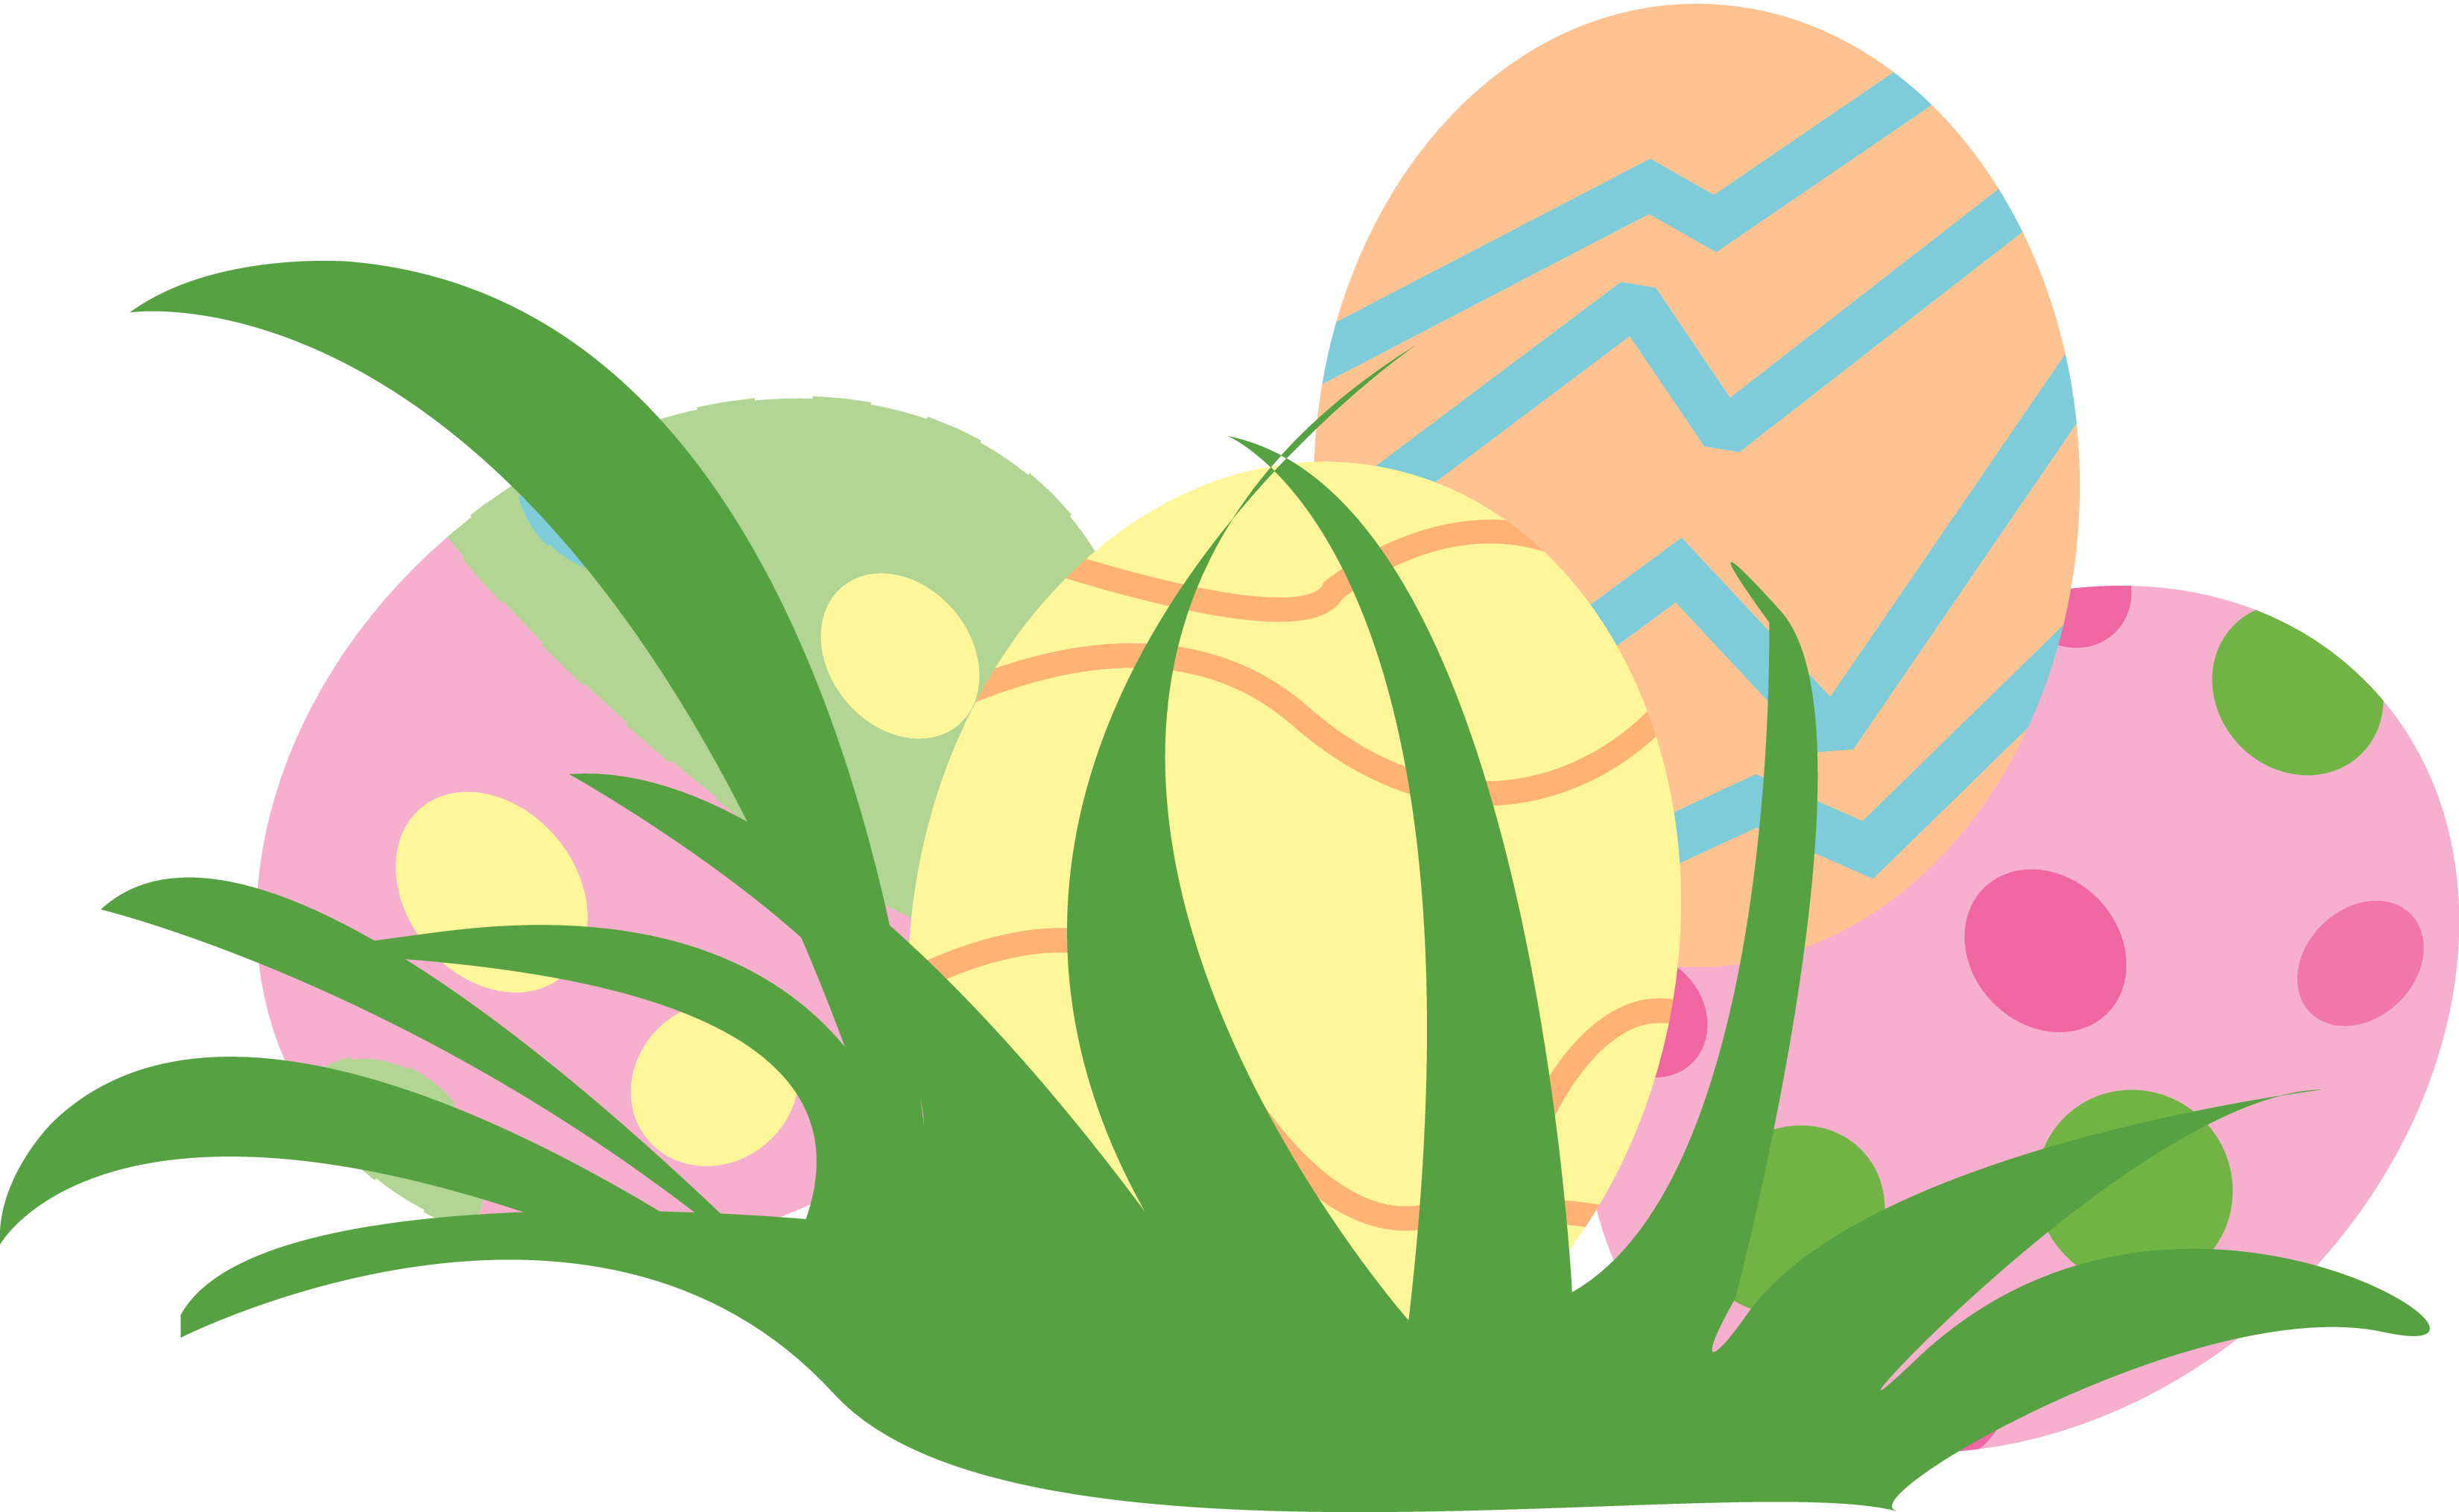 Free Easter Egg Hunt Clipart, Download Free Clip Art.